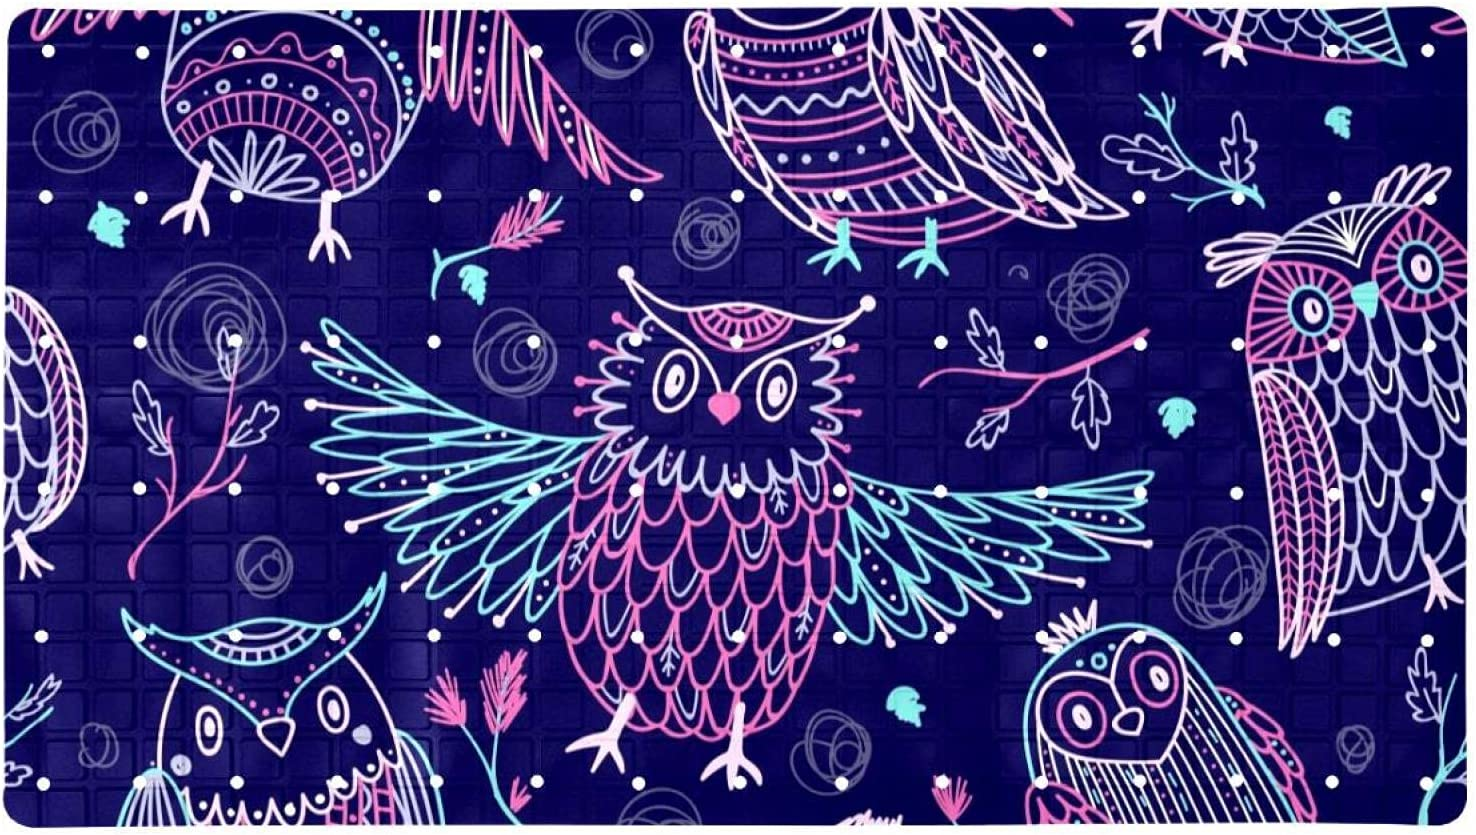 Bath Tub Shower Mat 15.7x27.9 inches Beauty products Owls Patt Floral Cute Tribe Time sale